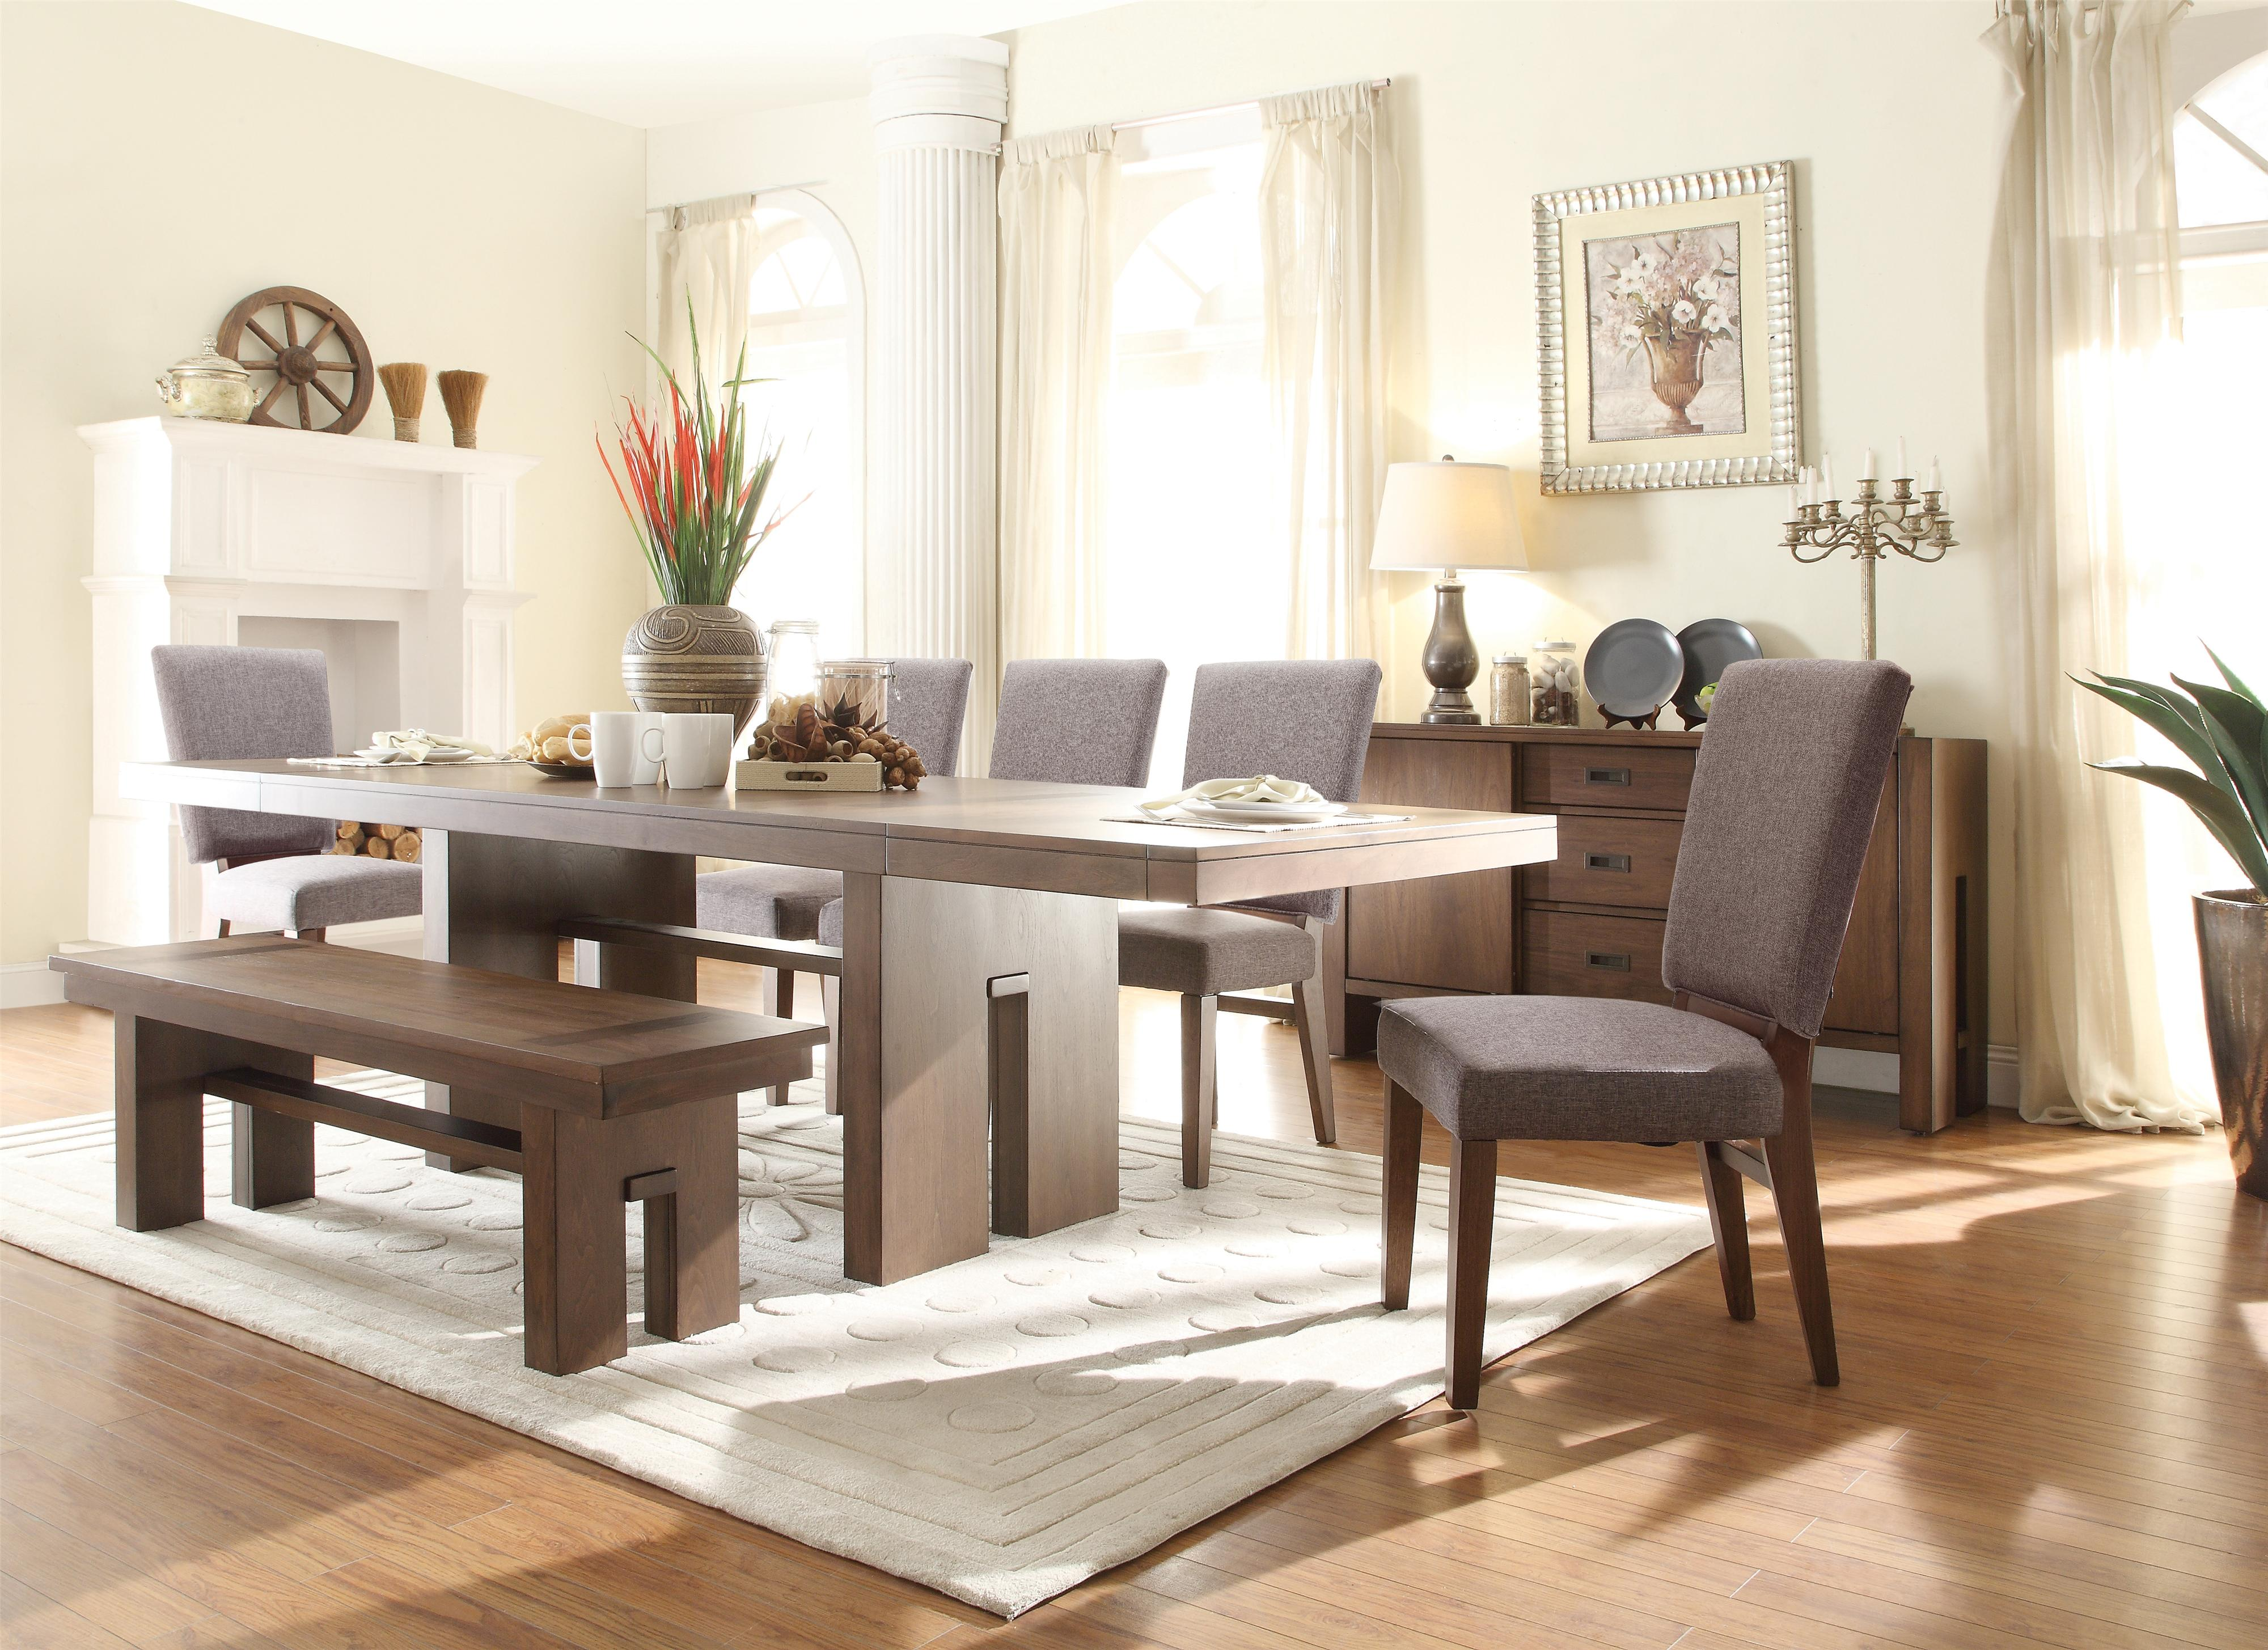 7 pc table chair set7 pc table chair set by riverside furniture wolf and gardiner. beautiful ideas. Home Design Ideas